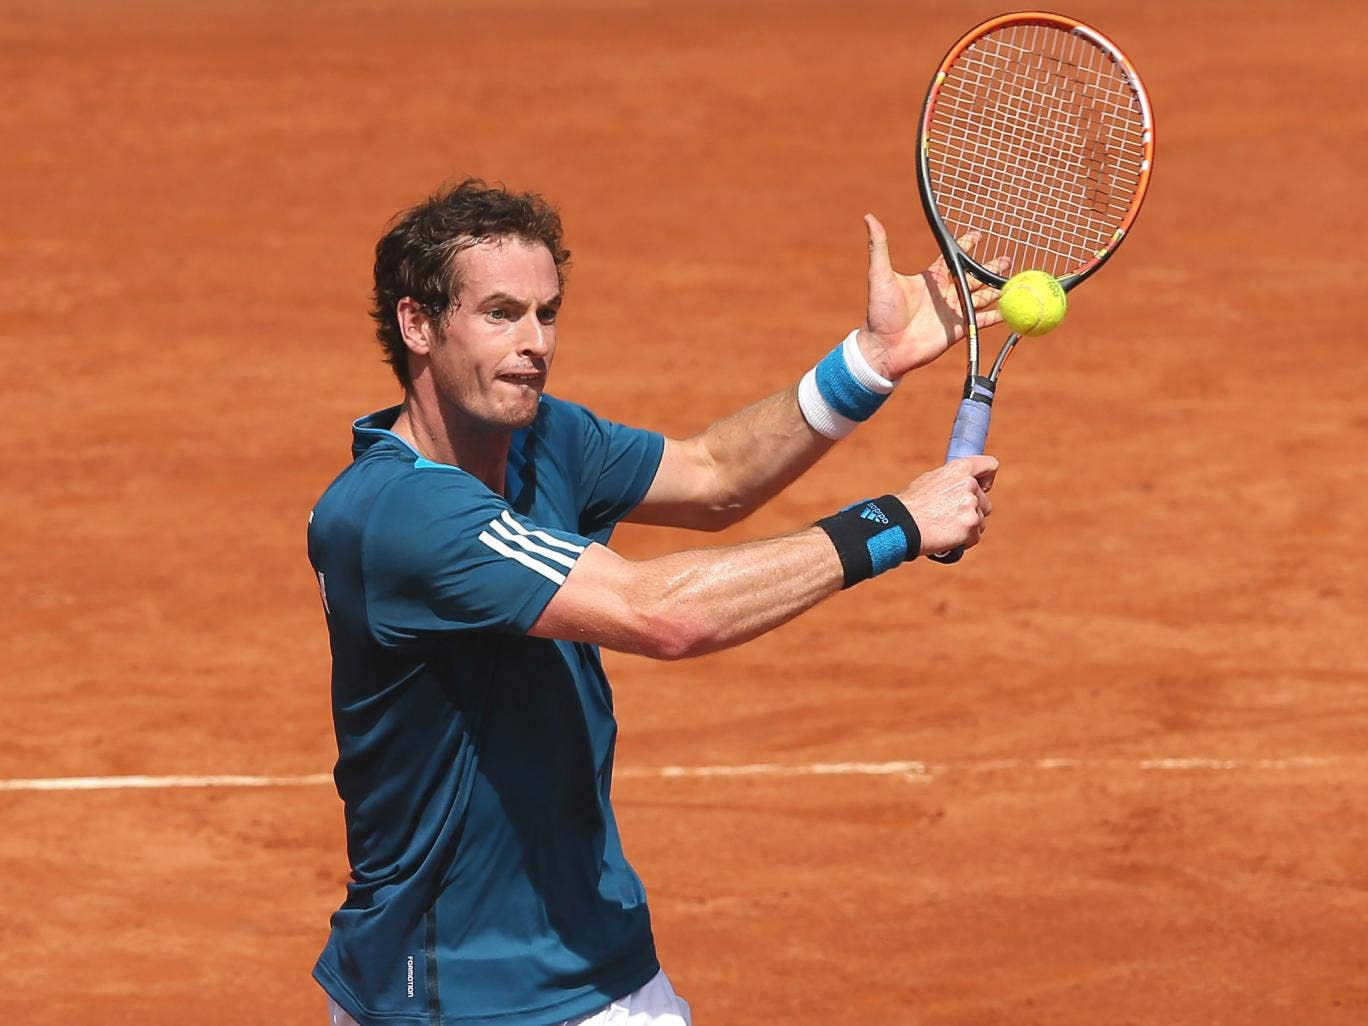 Andy Murray's most recent experience on clay, the Davis Cup match against Italy in Naples, ended in defeat to Fabio Fognini in the singles